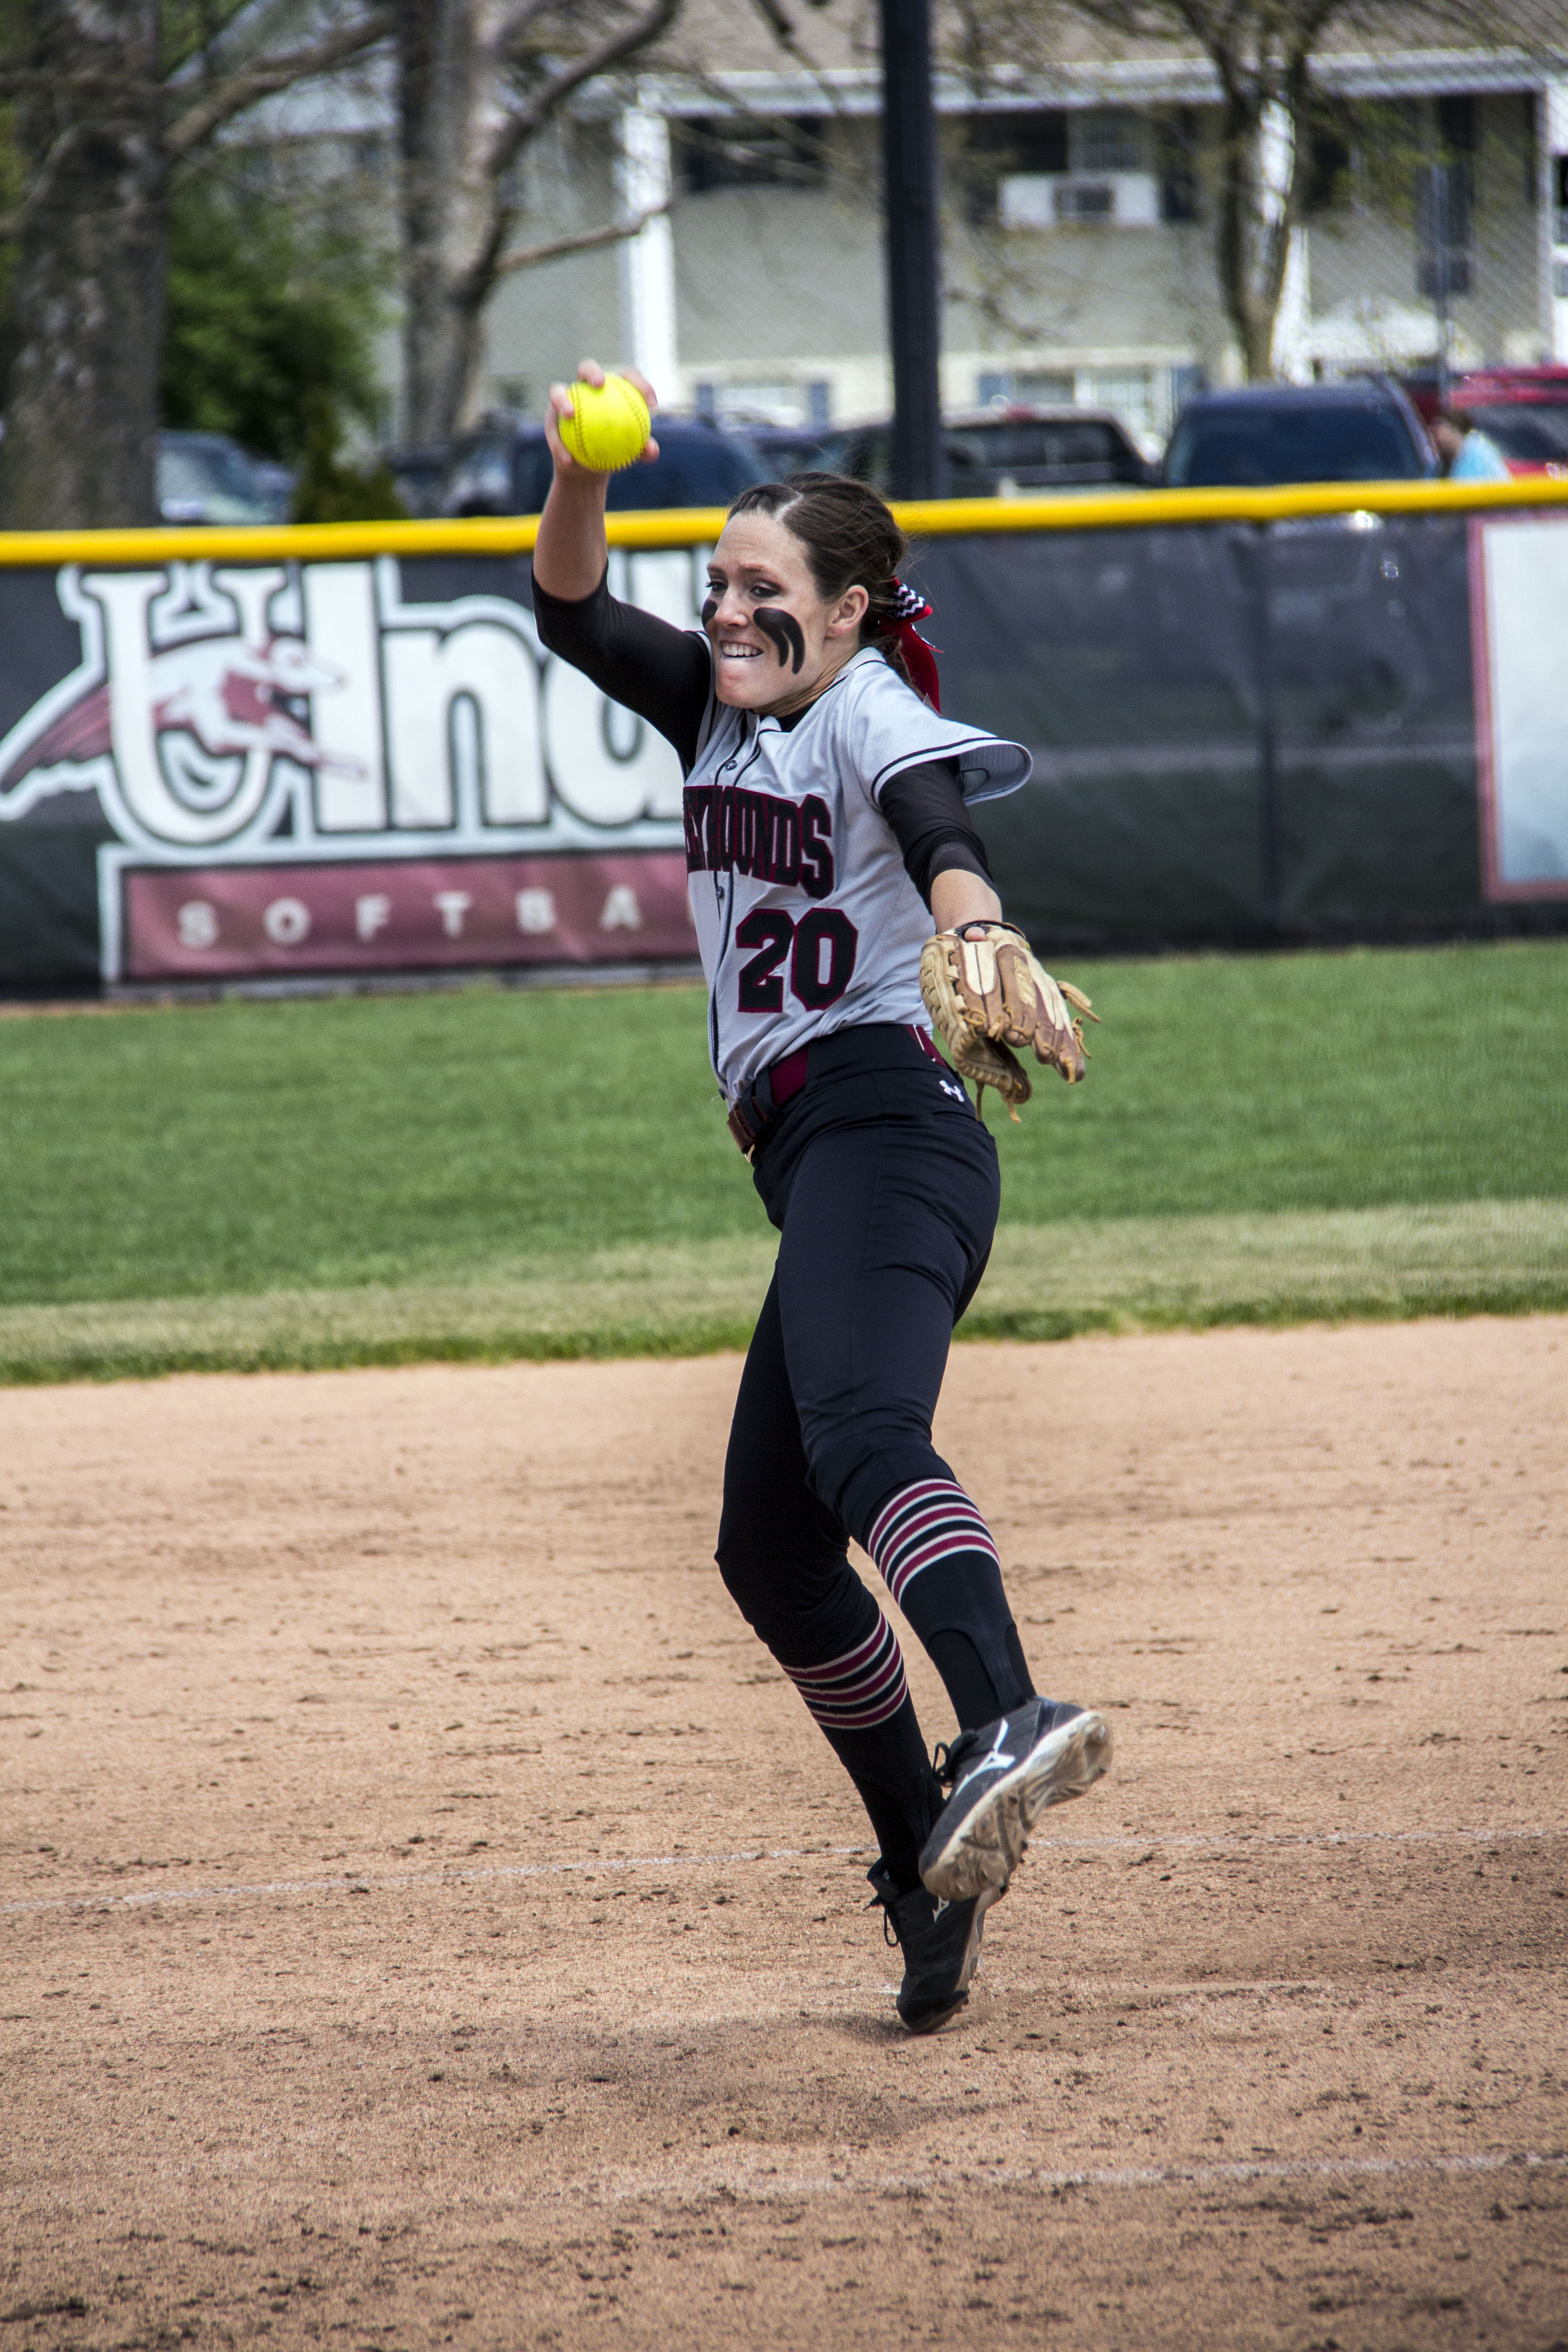 University of Indianapolis alumna and Chicago Bandits pitcher has received a nomination for the United States Sports Academy's Female Athlete of the year award. Photo by Cassie Reverman